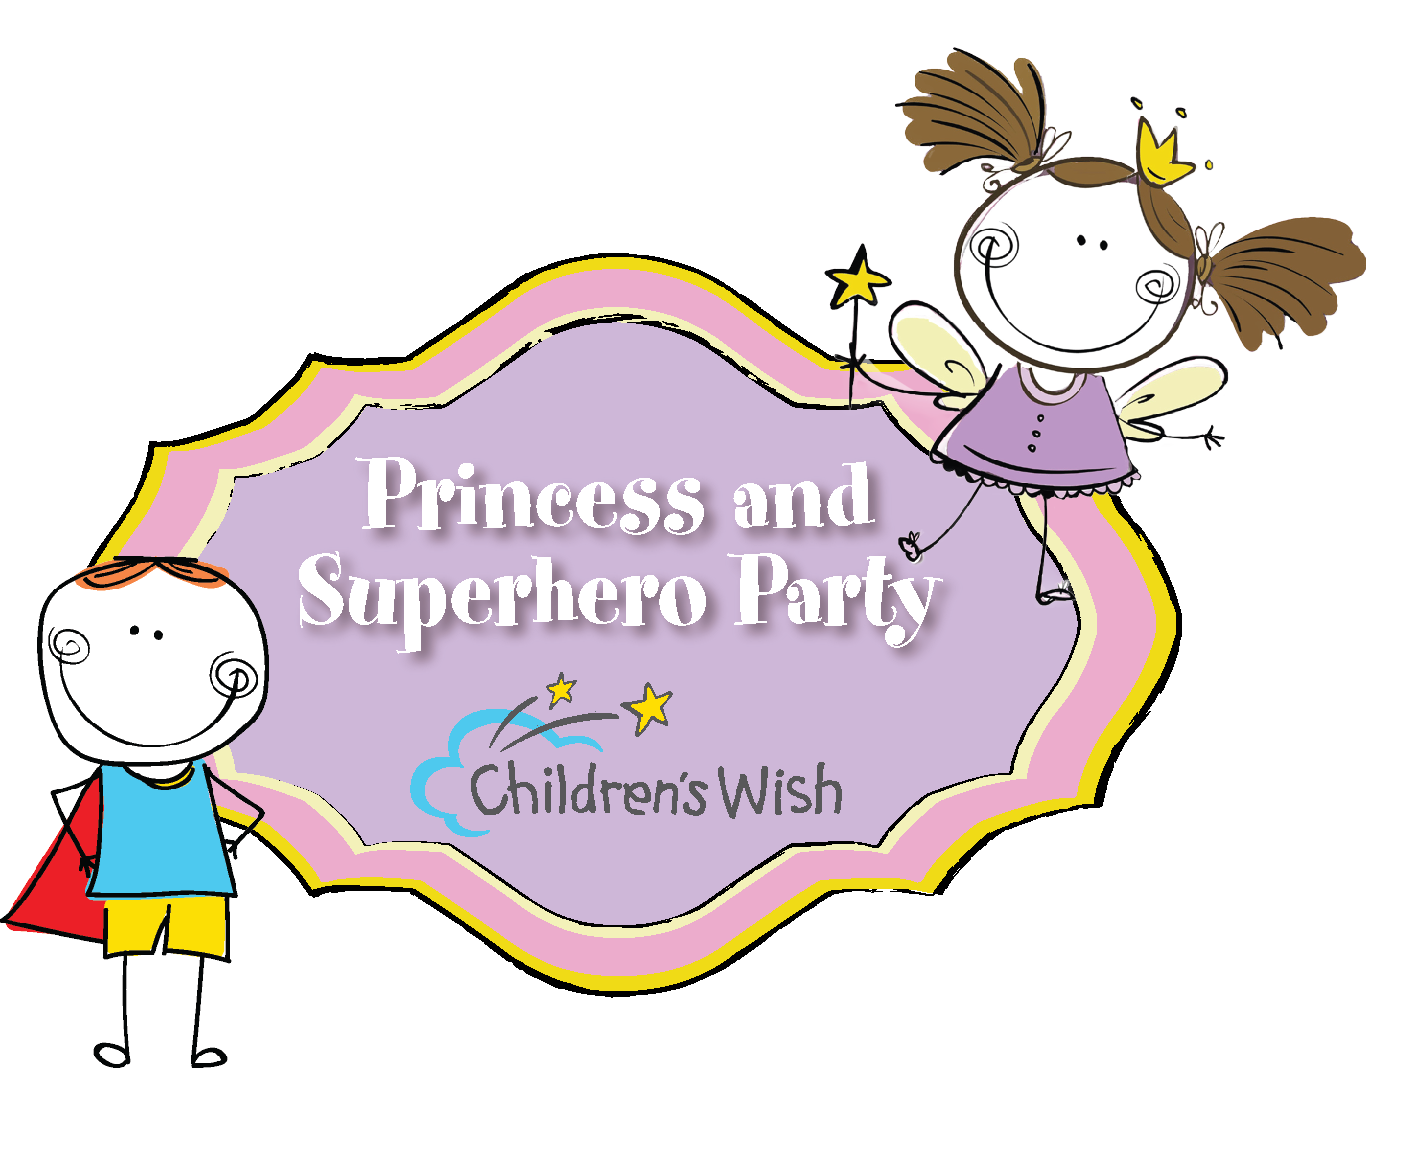 Fairytale clipart make believe. Princess and superhero party